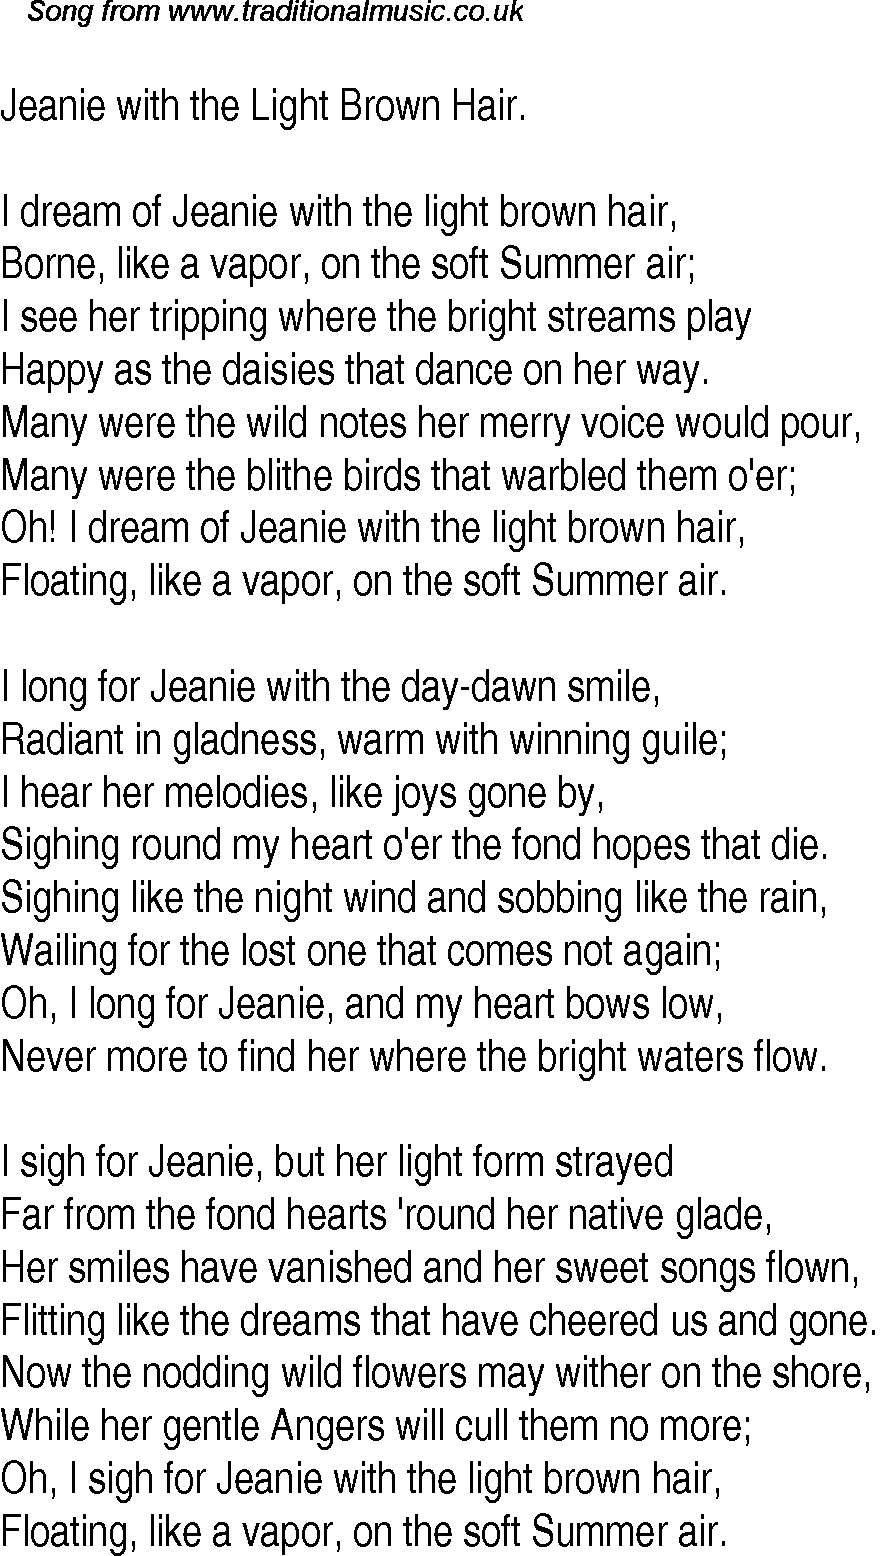 Old Time Song Lyrics For 24 Jeanie With The Light Brown Hair